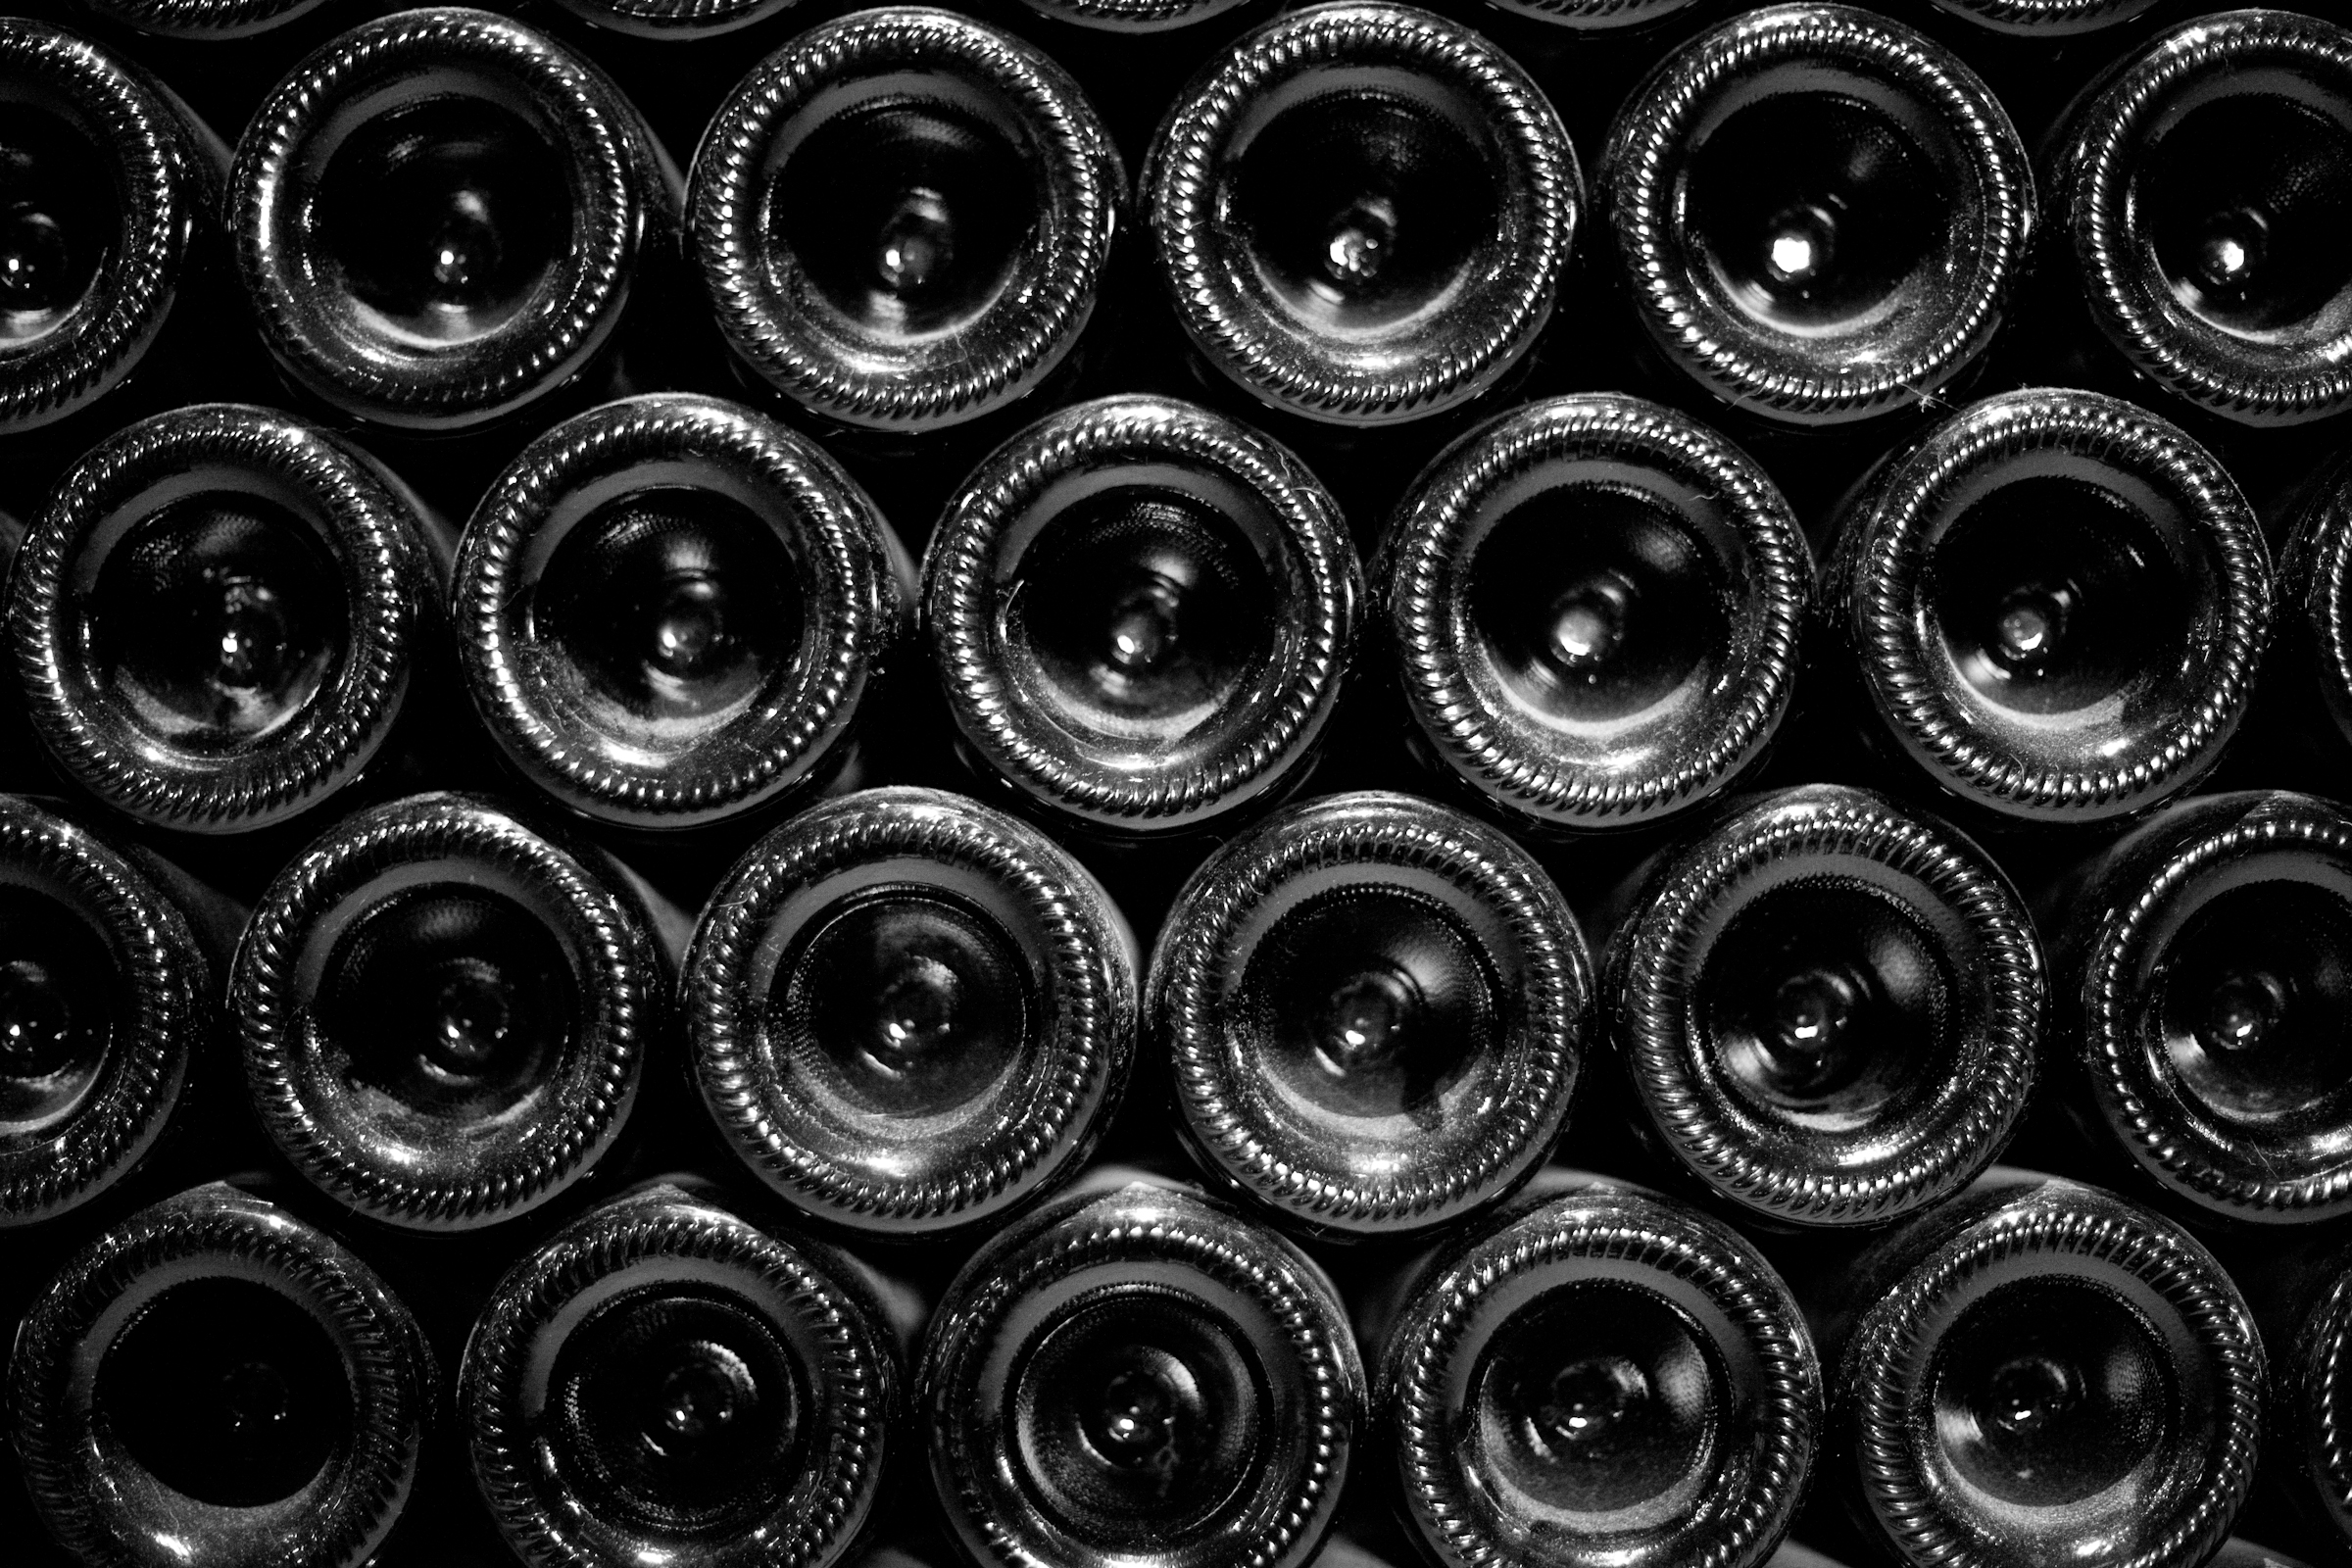 Barbaresco wine bottles